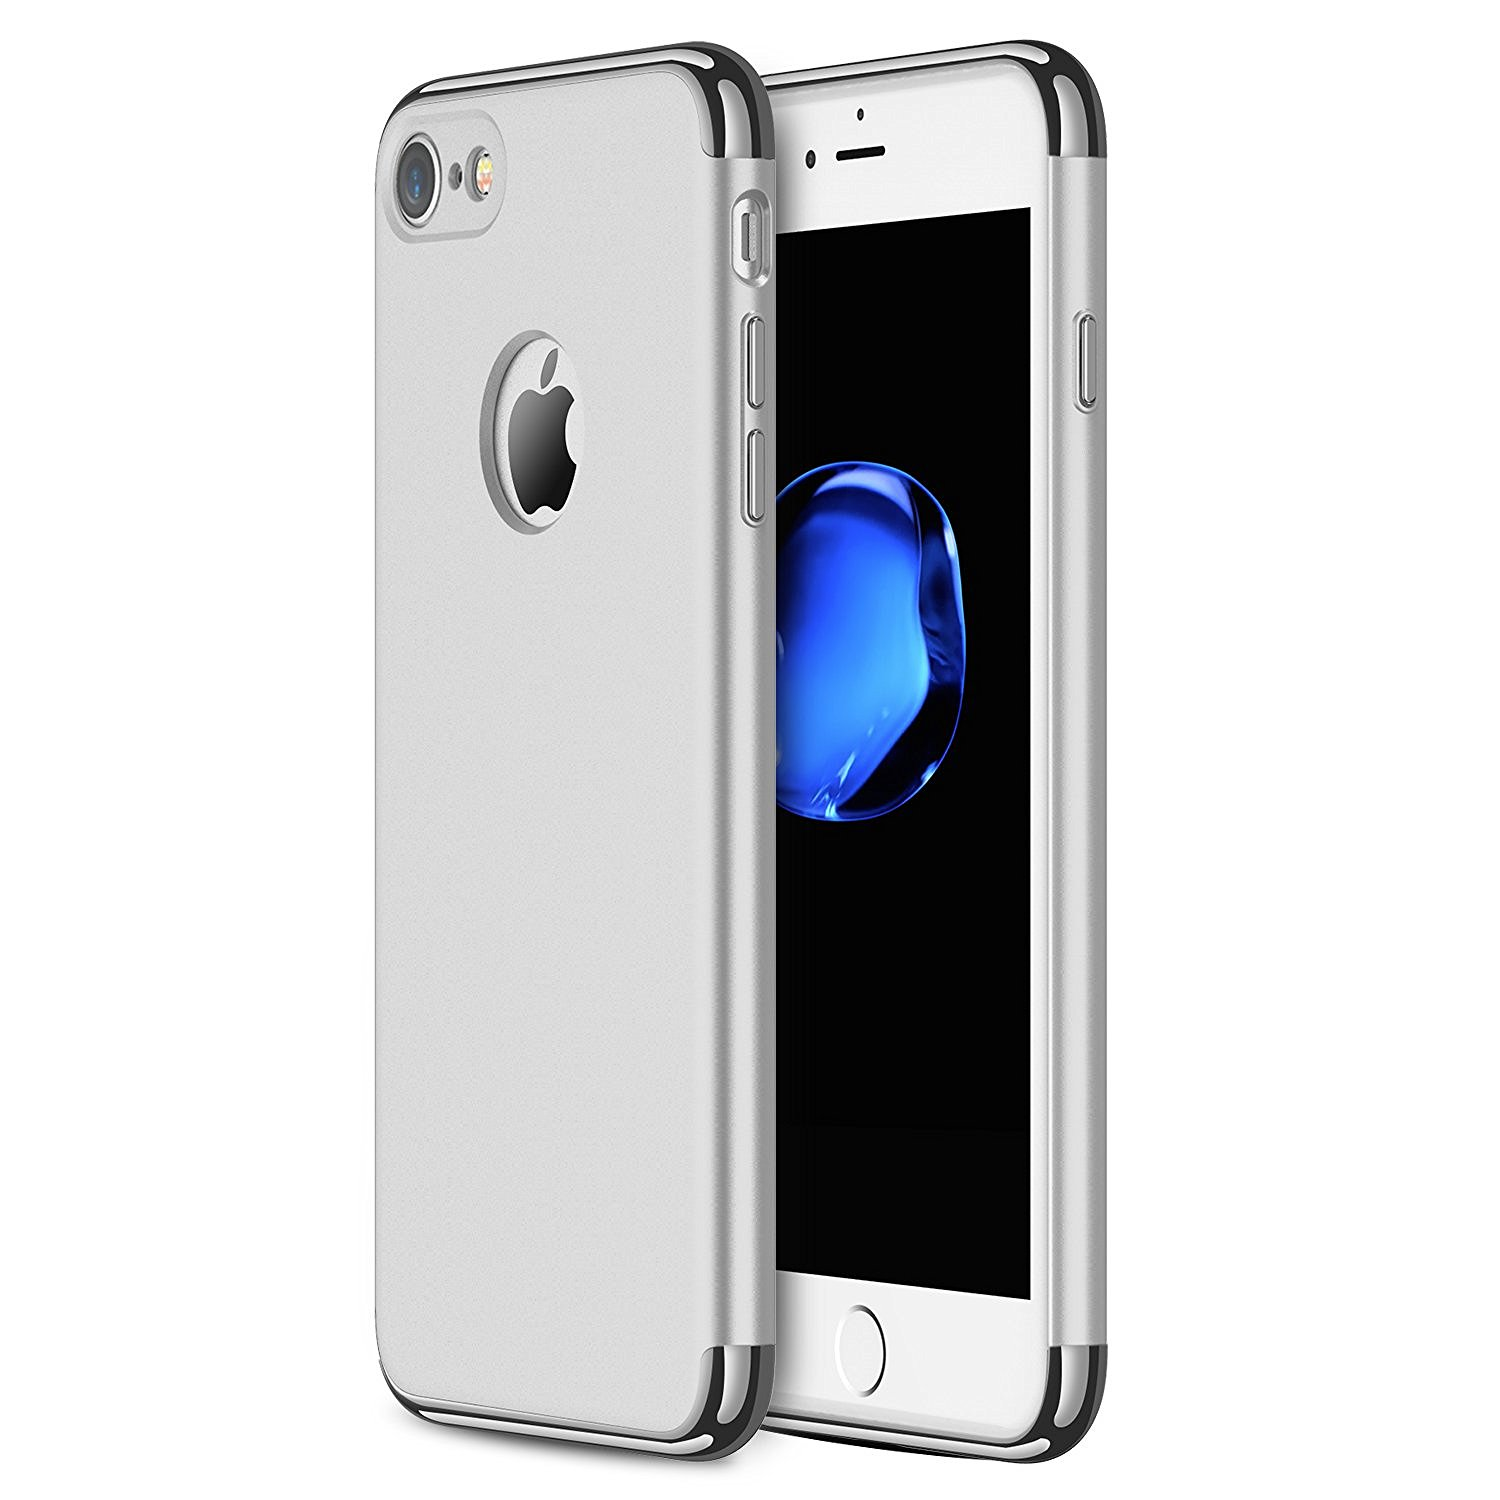 RANVOO Apple iPhone 7 Kılıf